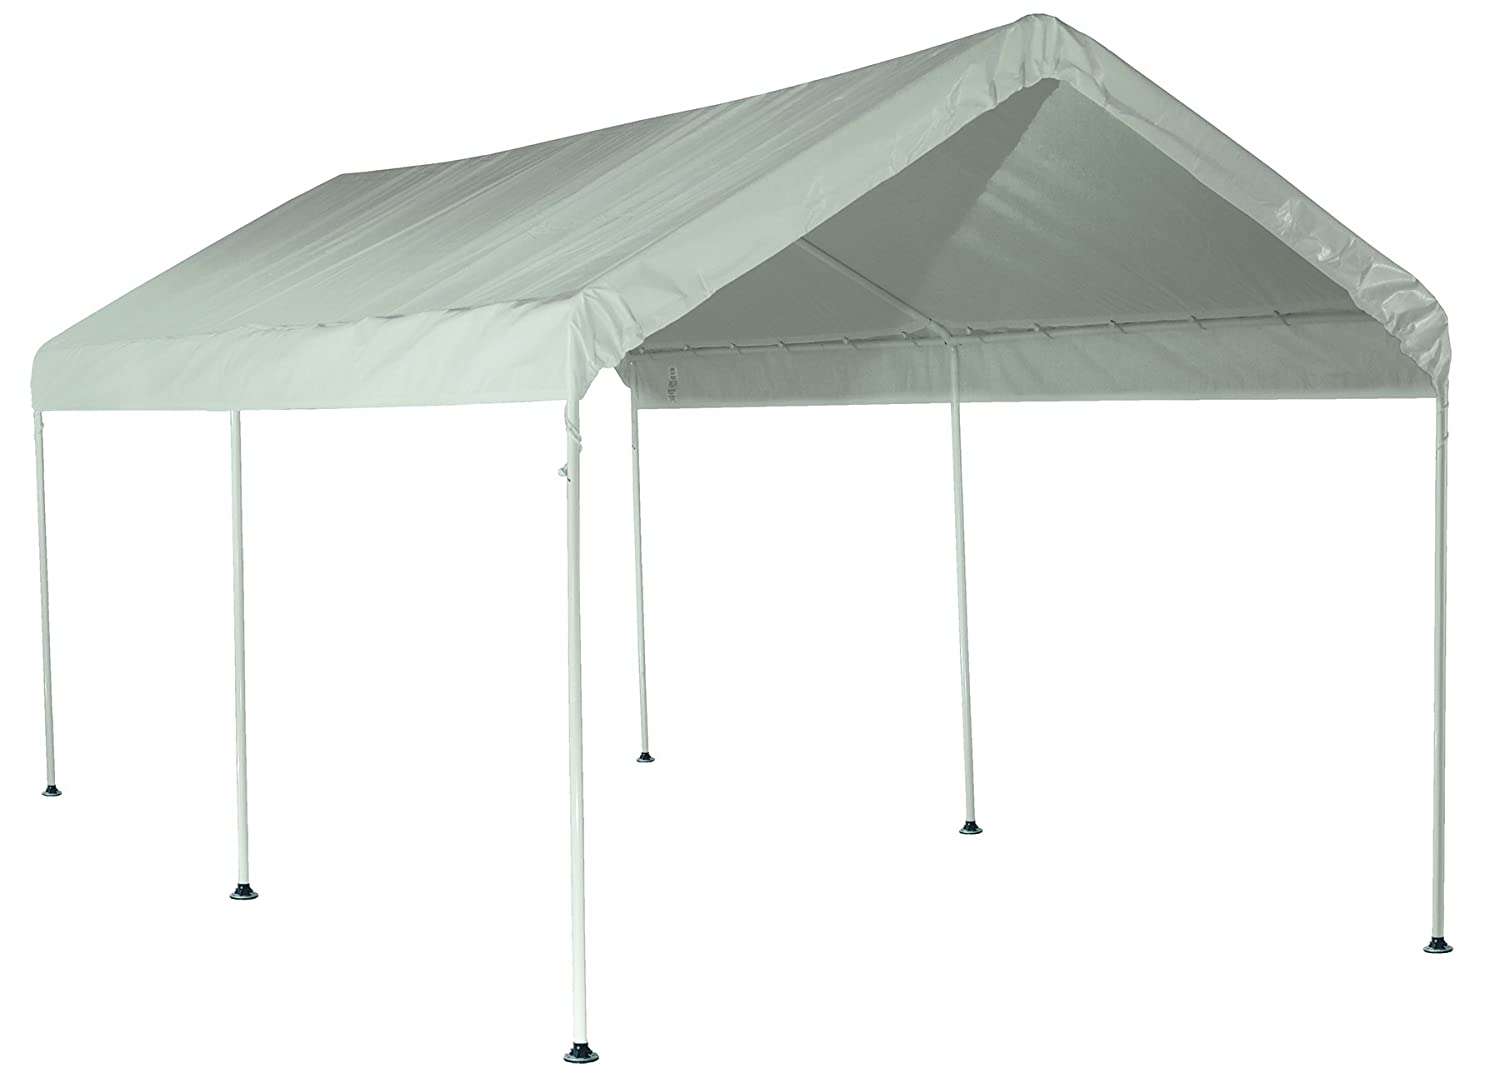 Amazon.com  ShelterLogic MAX AP Series Canopy White  Outdoor Canopies  Garden u0026 Outdoor  sc 1 st  Amazon.com & Amazon.com : ShelterLogic MAX AP Series Canopy White : Outdoor ...